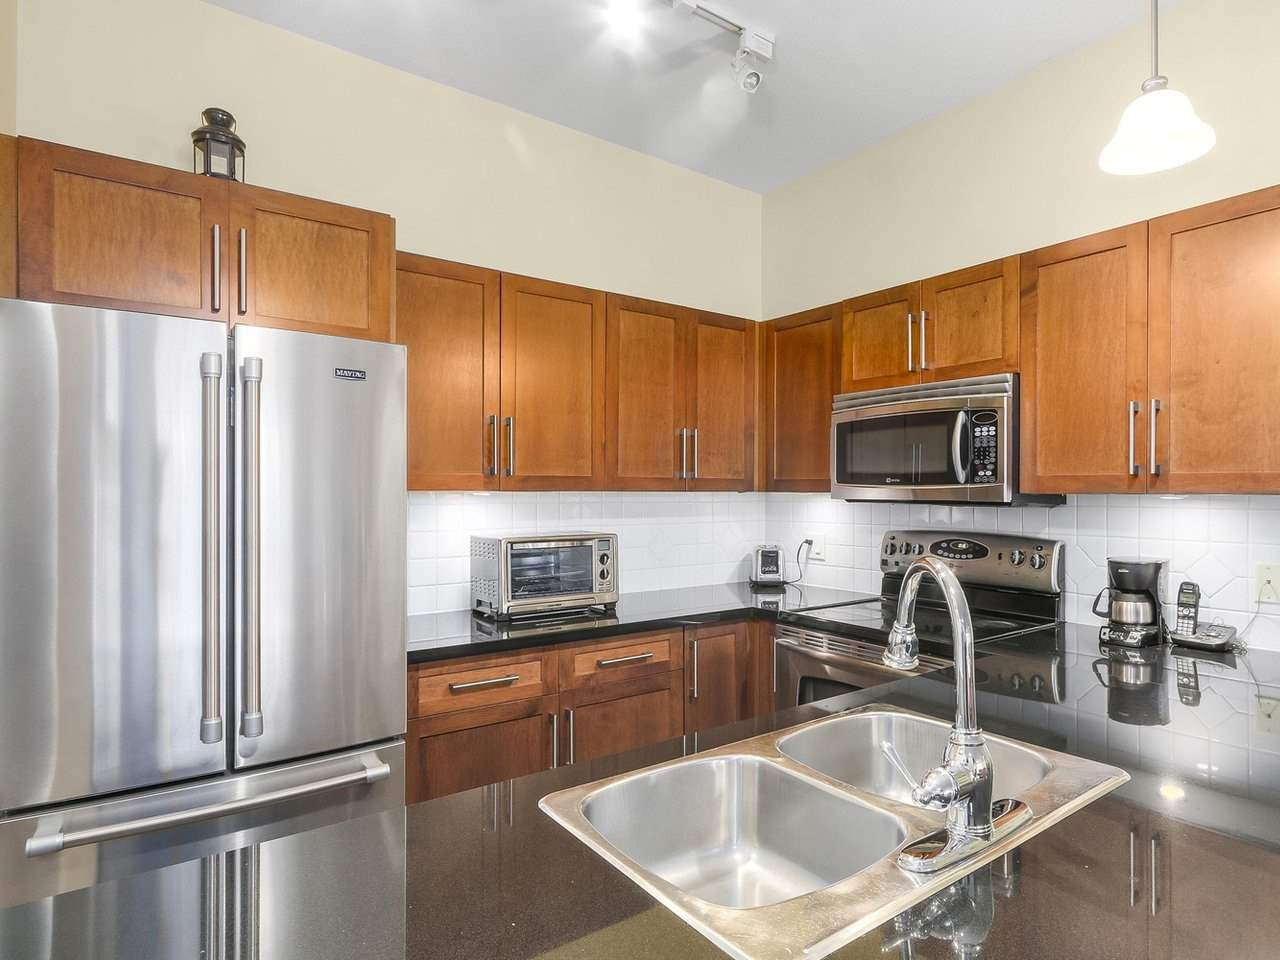 Condo Apartment at 101 2353 MARPOLE AVENUE, Unit 101, Port Coquitlam, British Columbia. Image 7